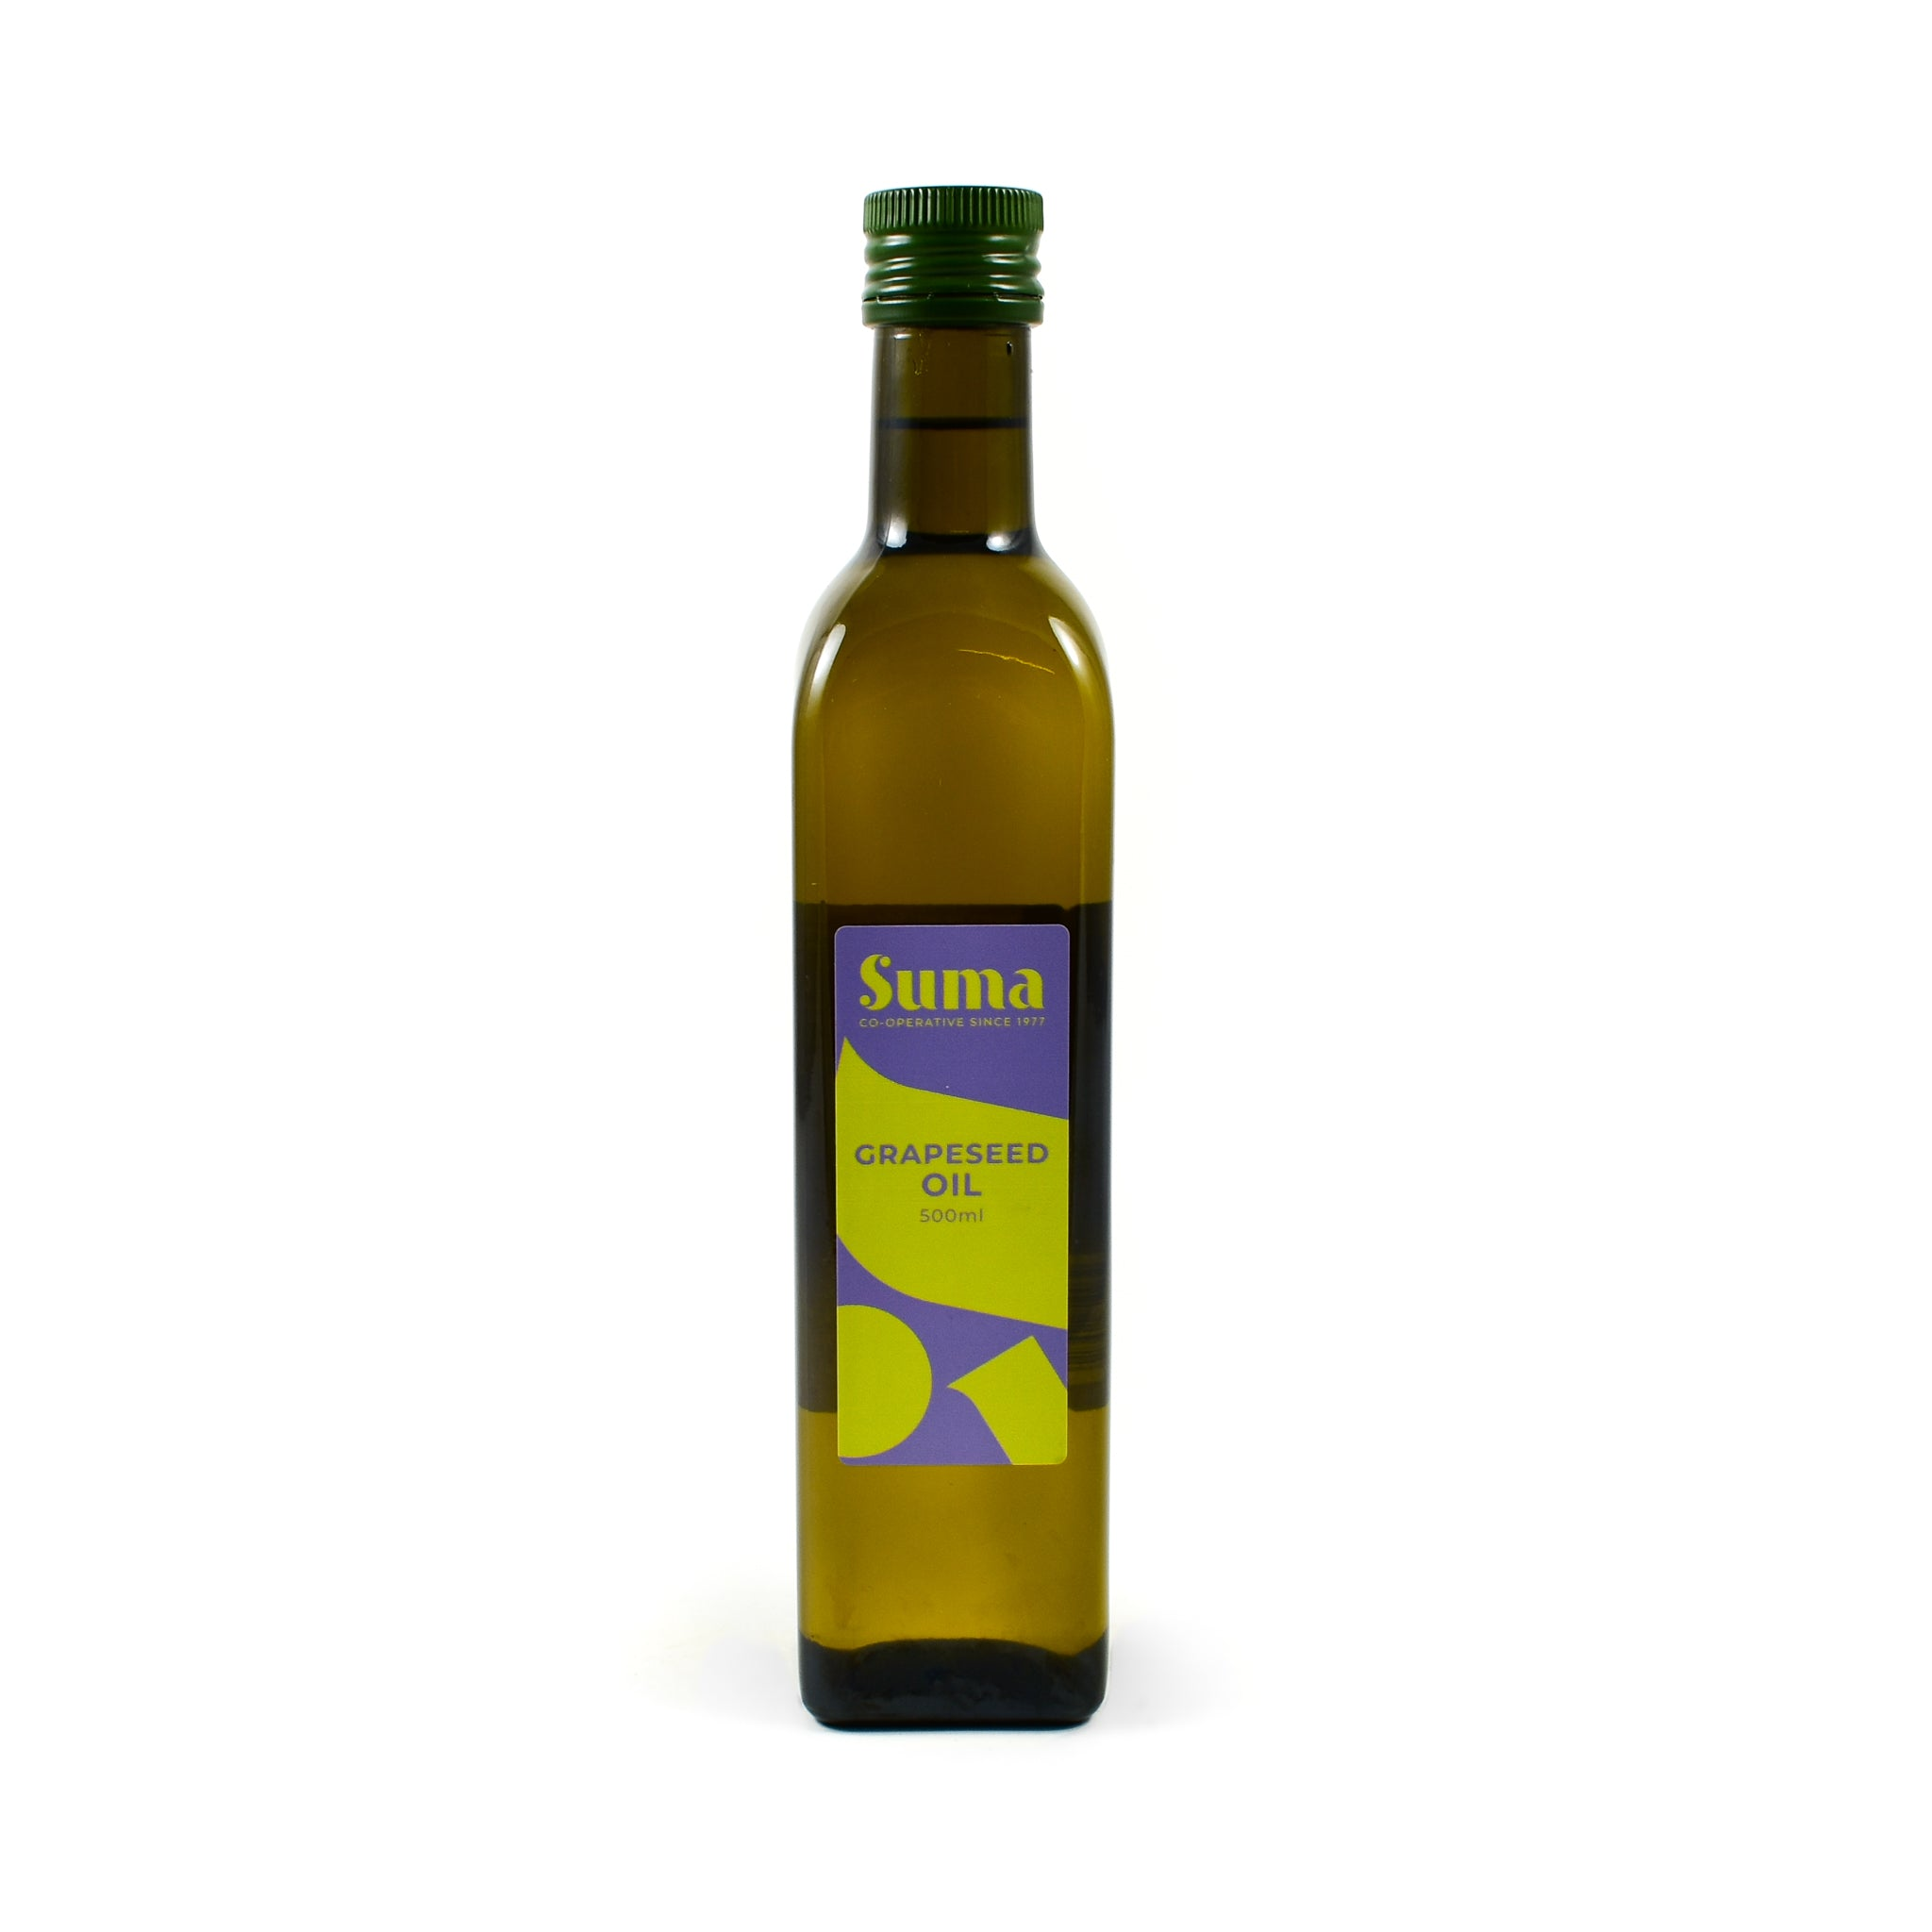 Suma Grapeseed Oil 500ml Ingredients Oils & Vinegars